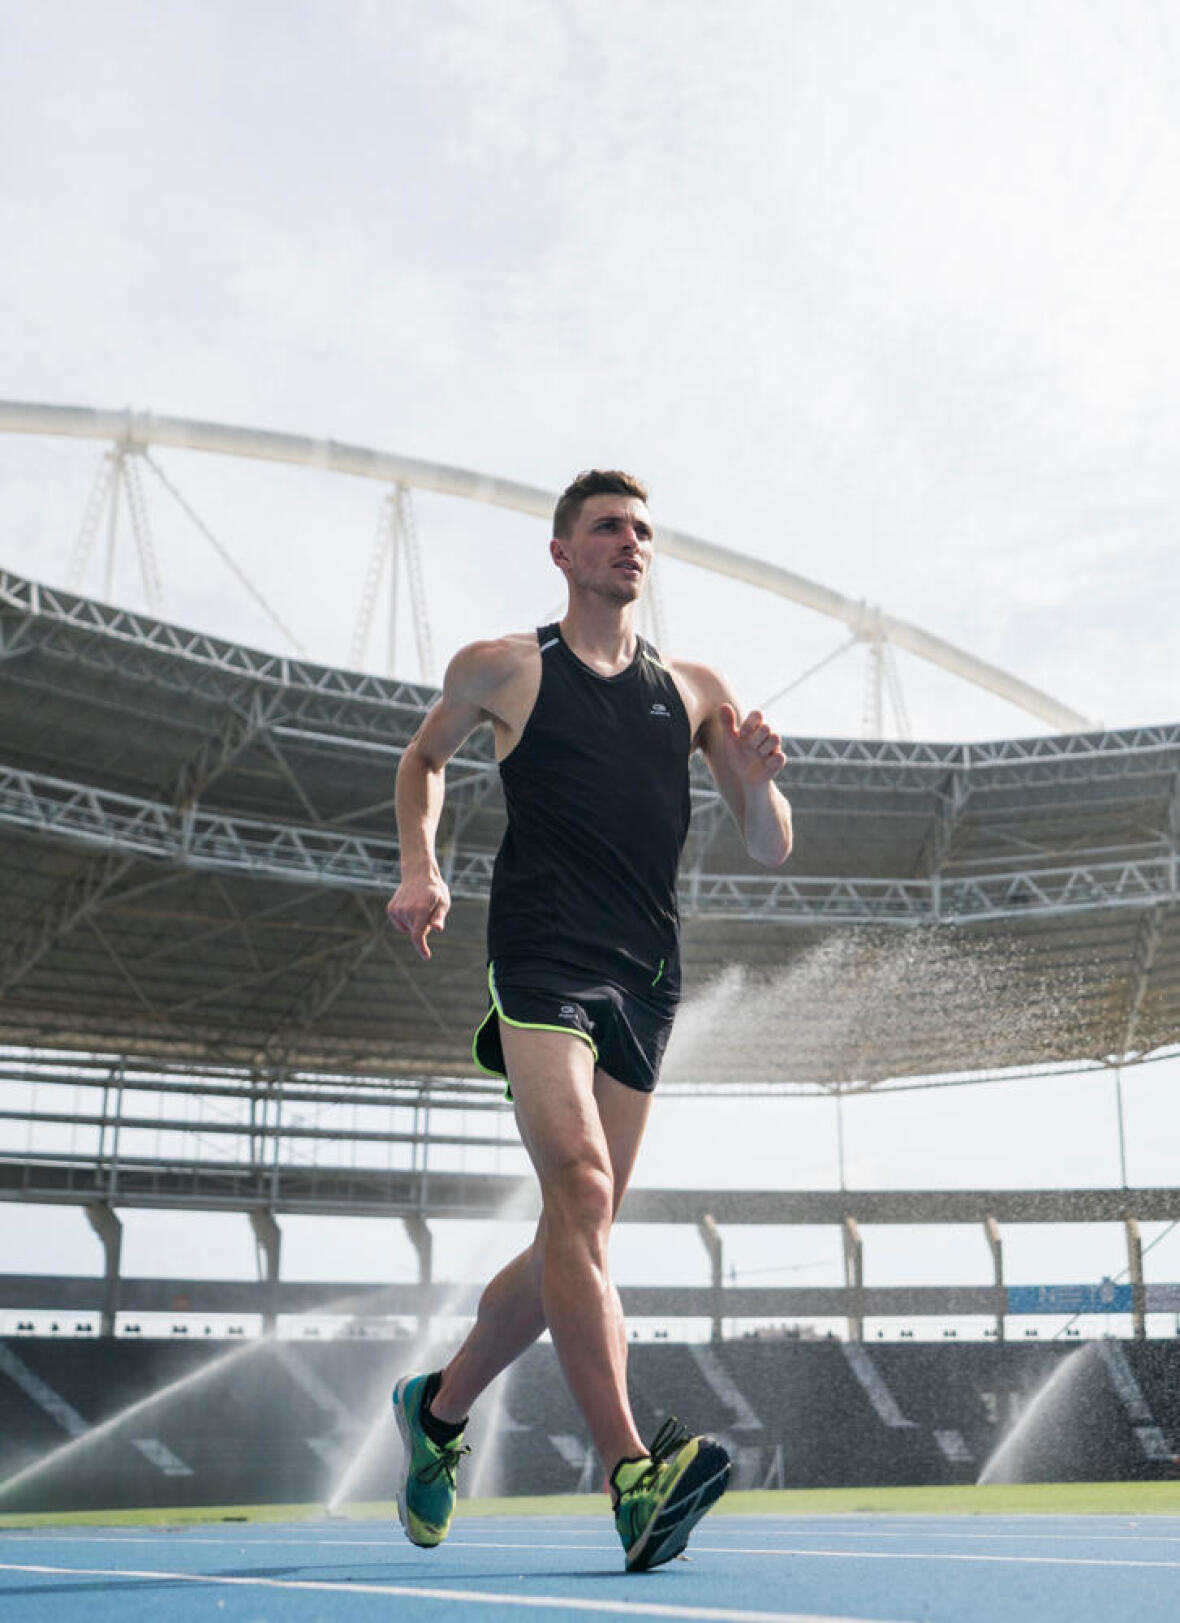 Using interval training to slash your race walking PBs